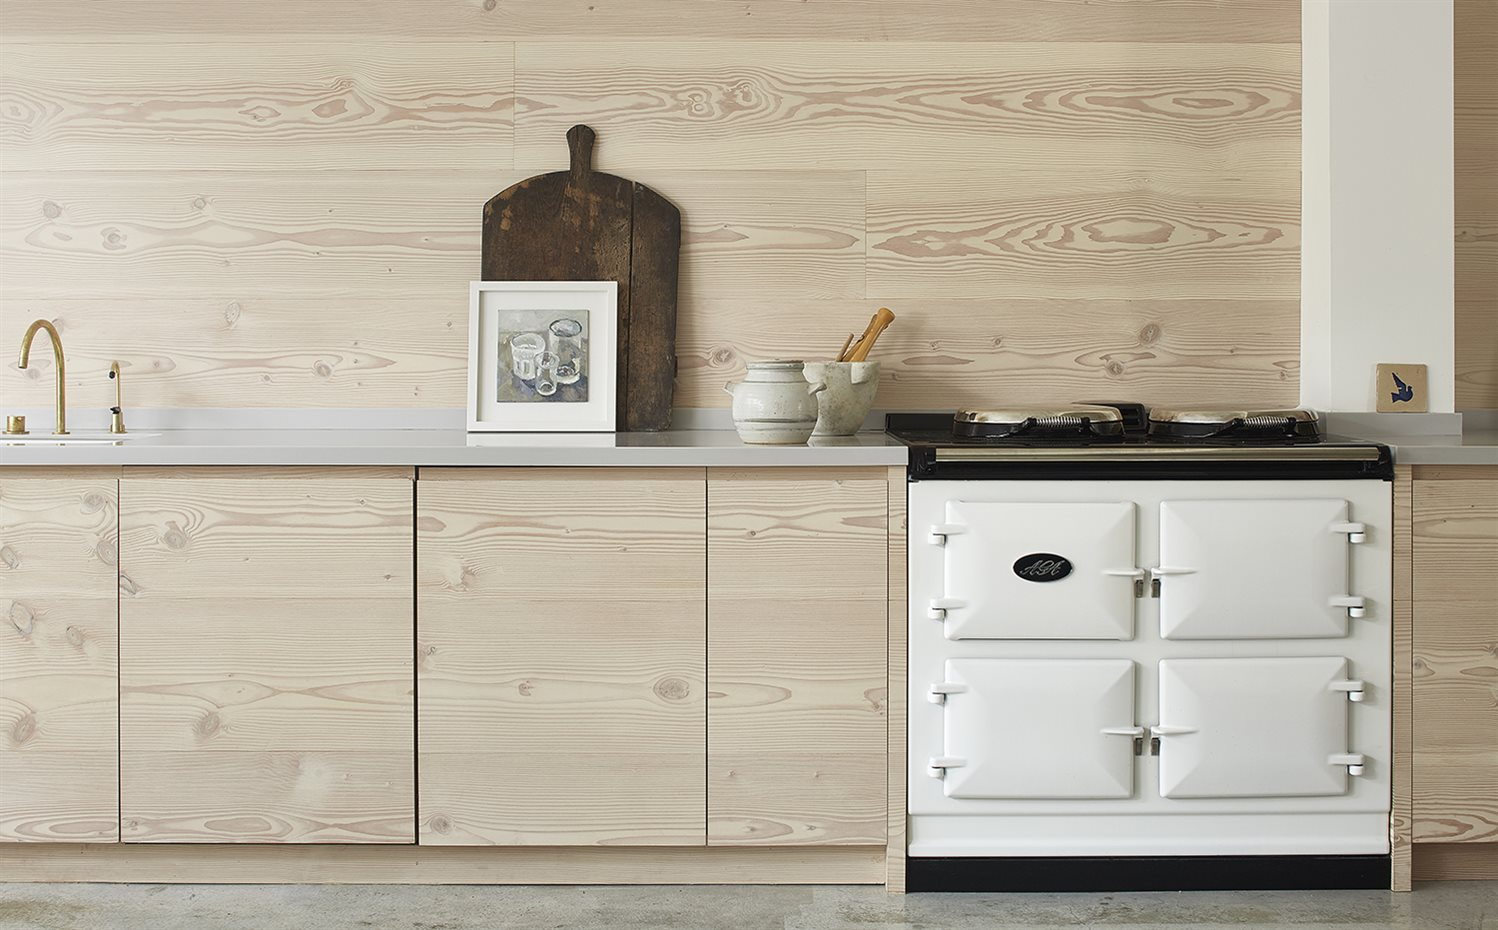 Scandinavian-pale-wood-kitchen-Blakes-London-House-of-Grey-5. Cocina de estilo escandinavo con la madera como protagonista